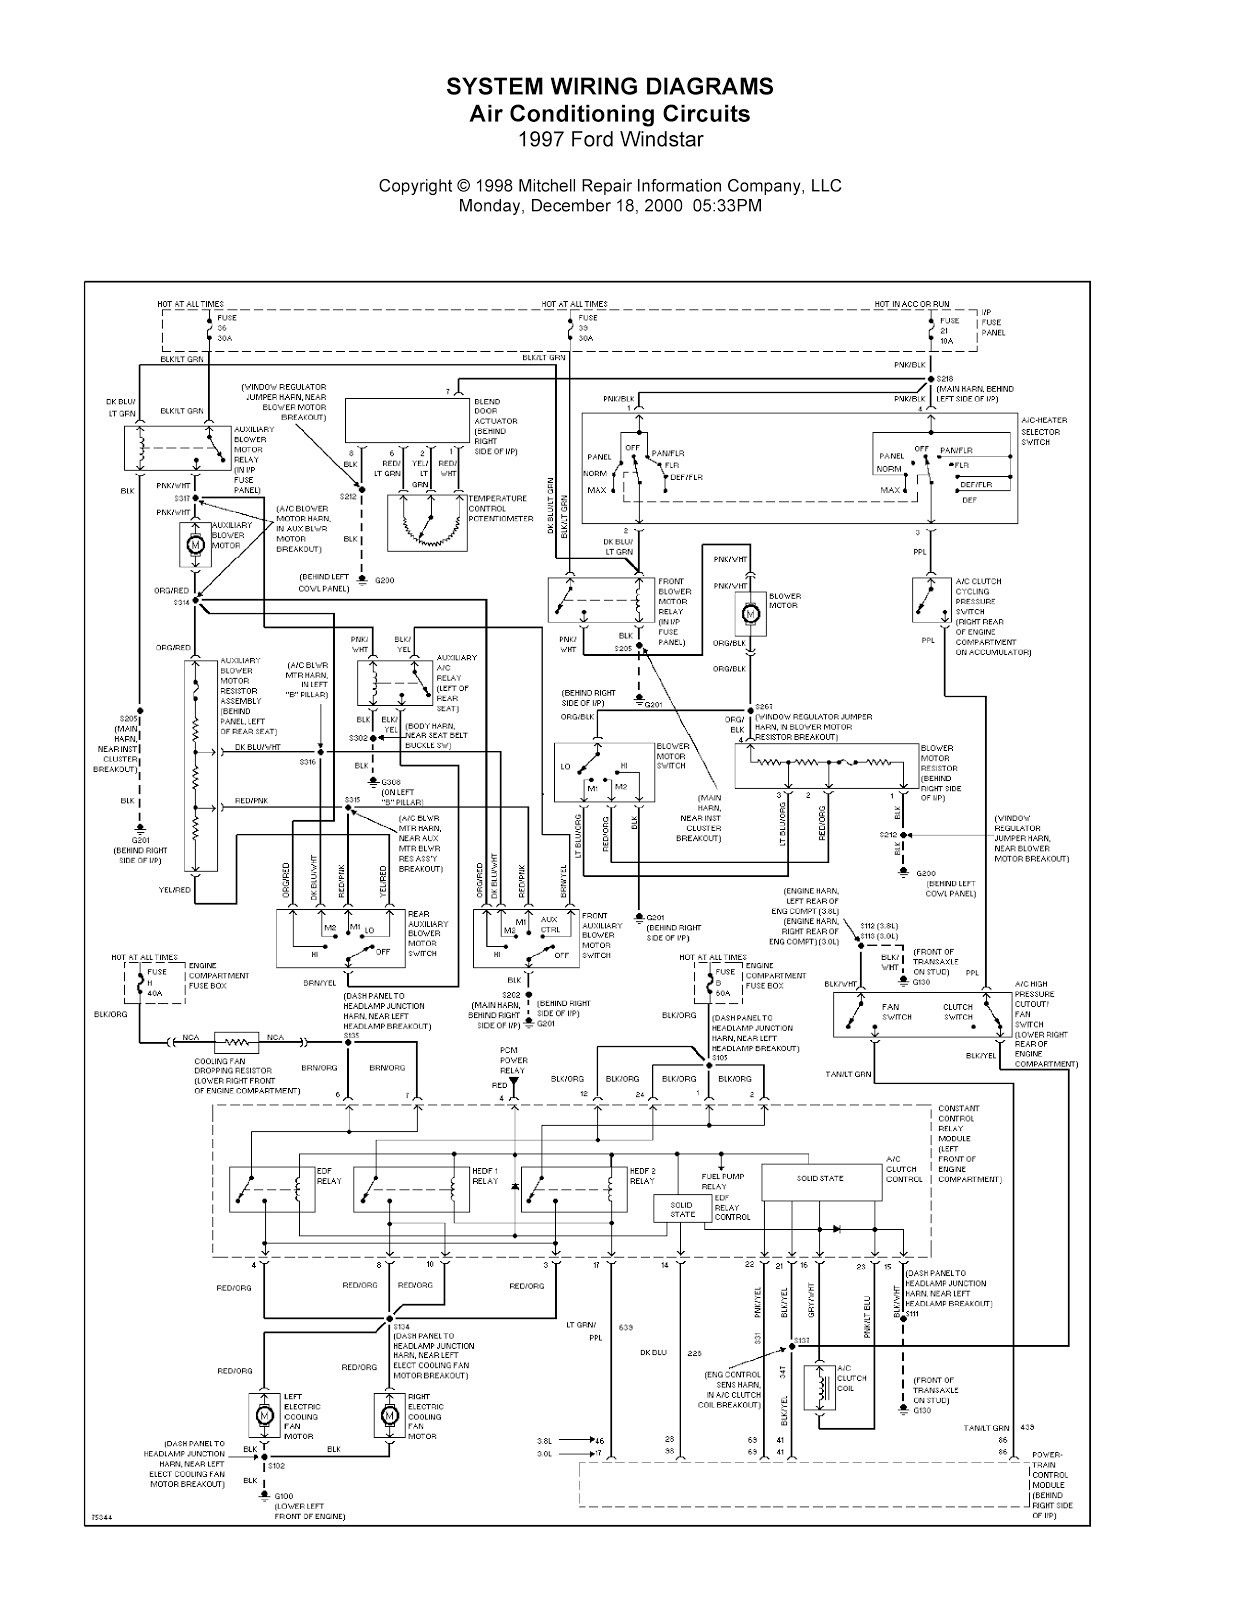 2001 ford Explorer Engine Diagram Fuse Box Diagram Also Free Image About Wiring Diagram and Schematic Of 2001 ford Explorer Engine Diagram